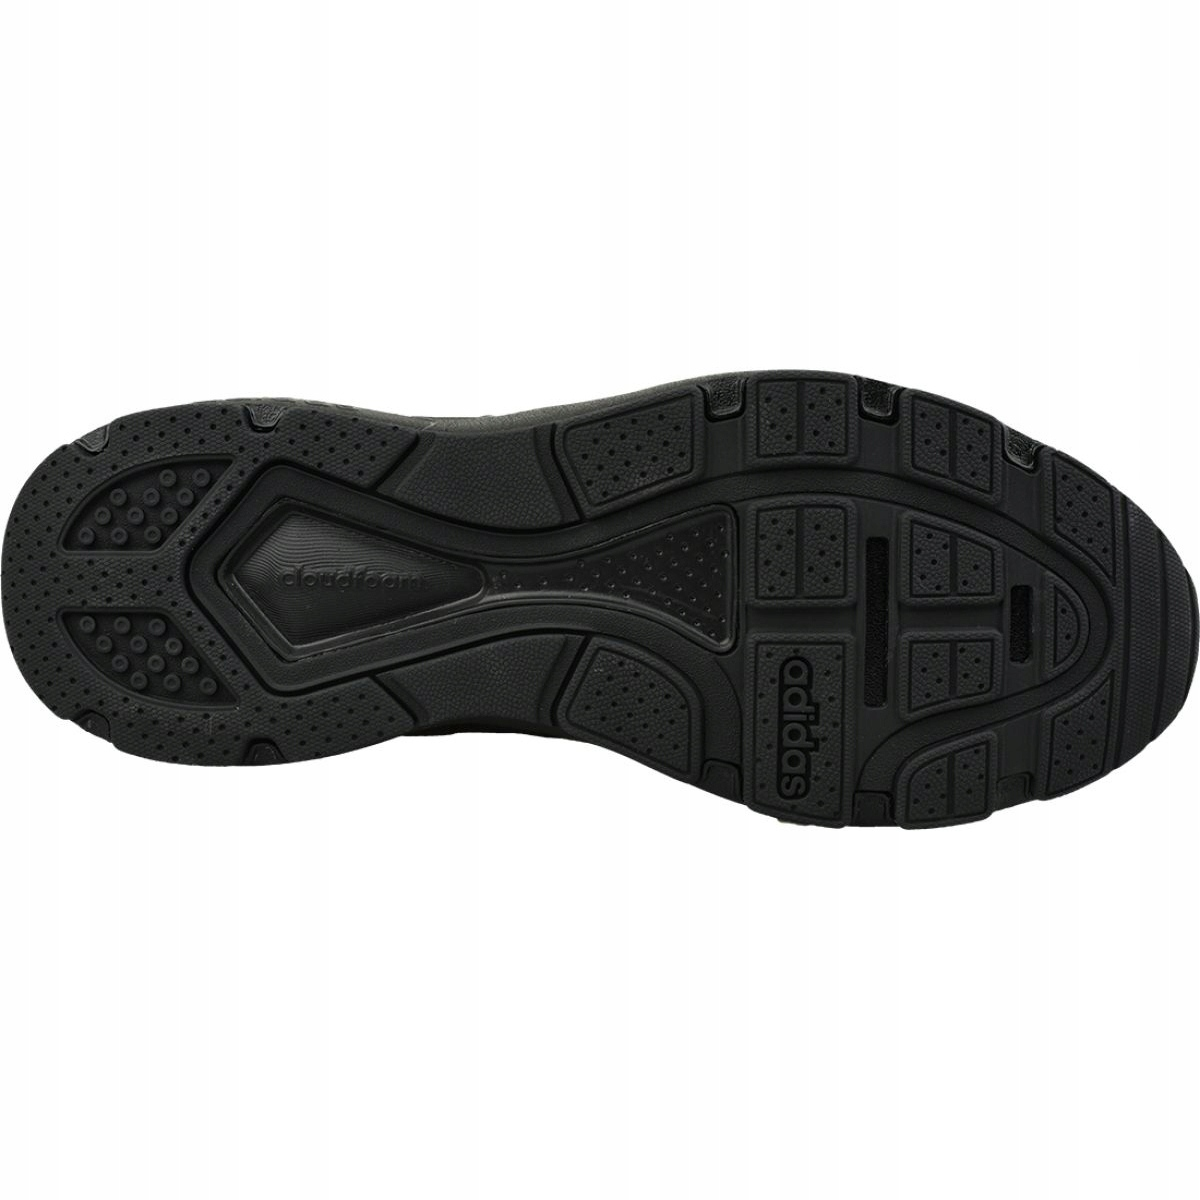 Adidas-Crazychaos-M-EE5587-shoes-black thumbnail 4